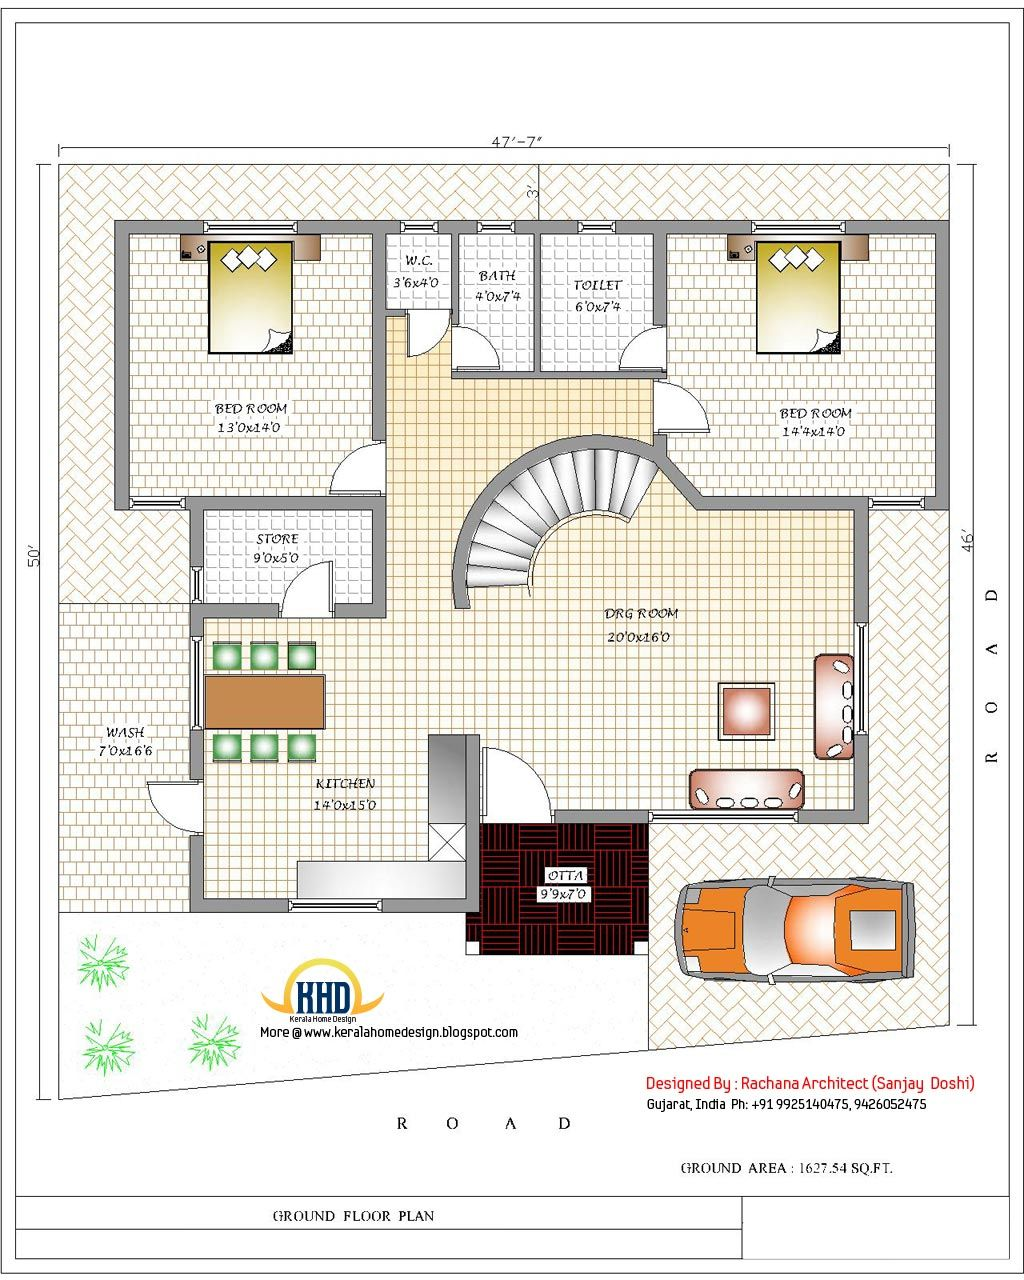 Modern Indian Architecture Google Search: India Home Design With House Plans - 3200 Sq.Ft.